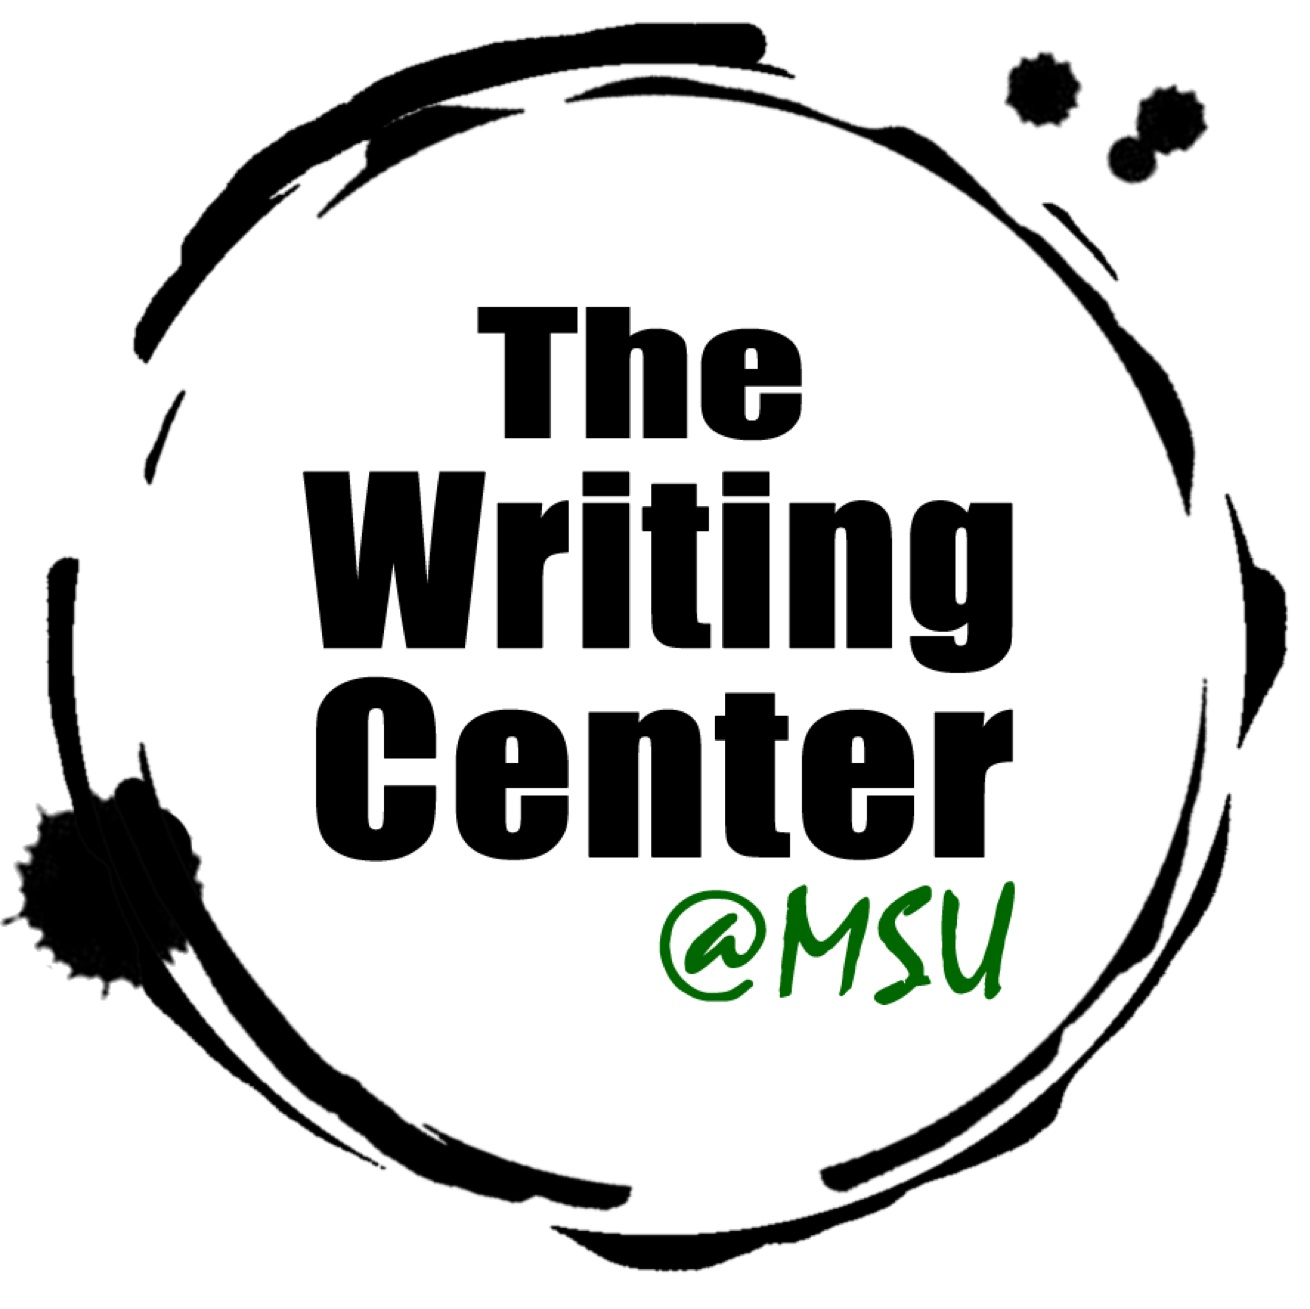 The Writing Center at Michigan State University's Oral History Research Project